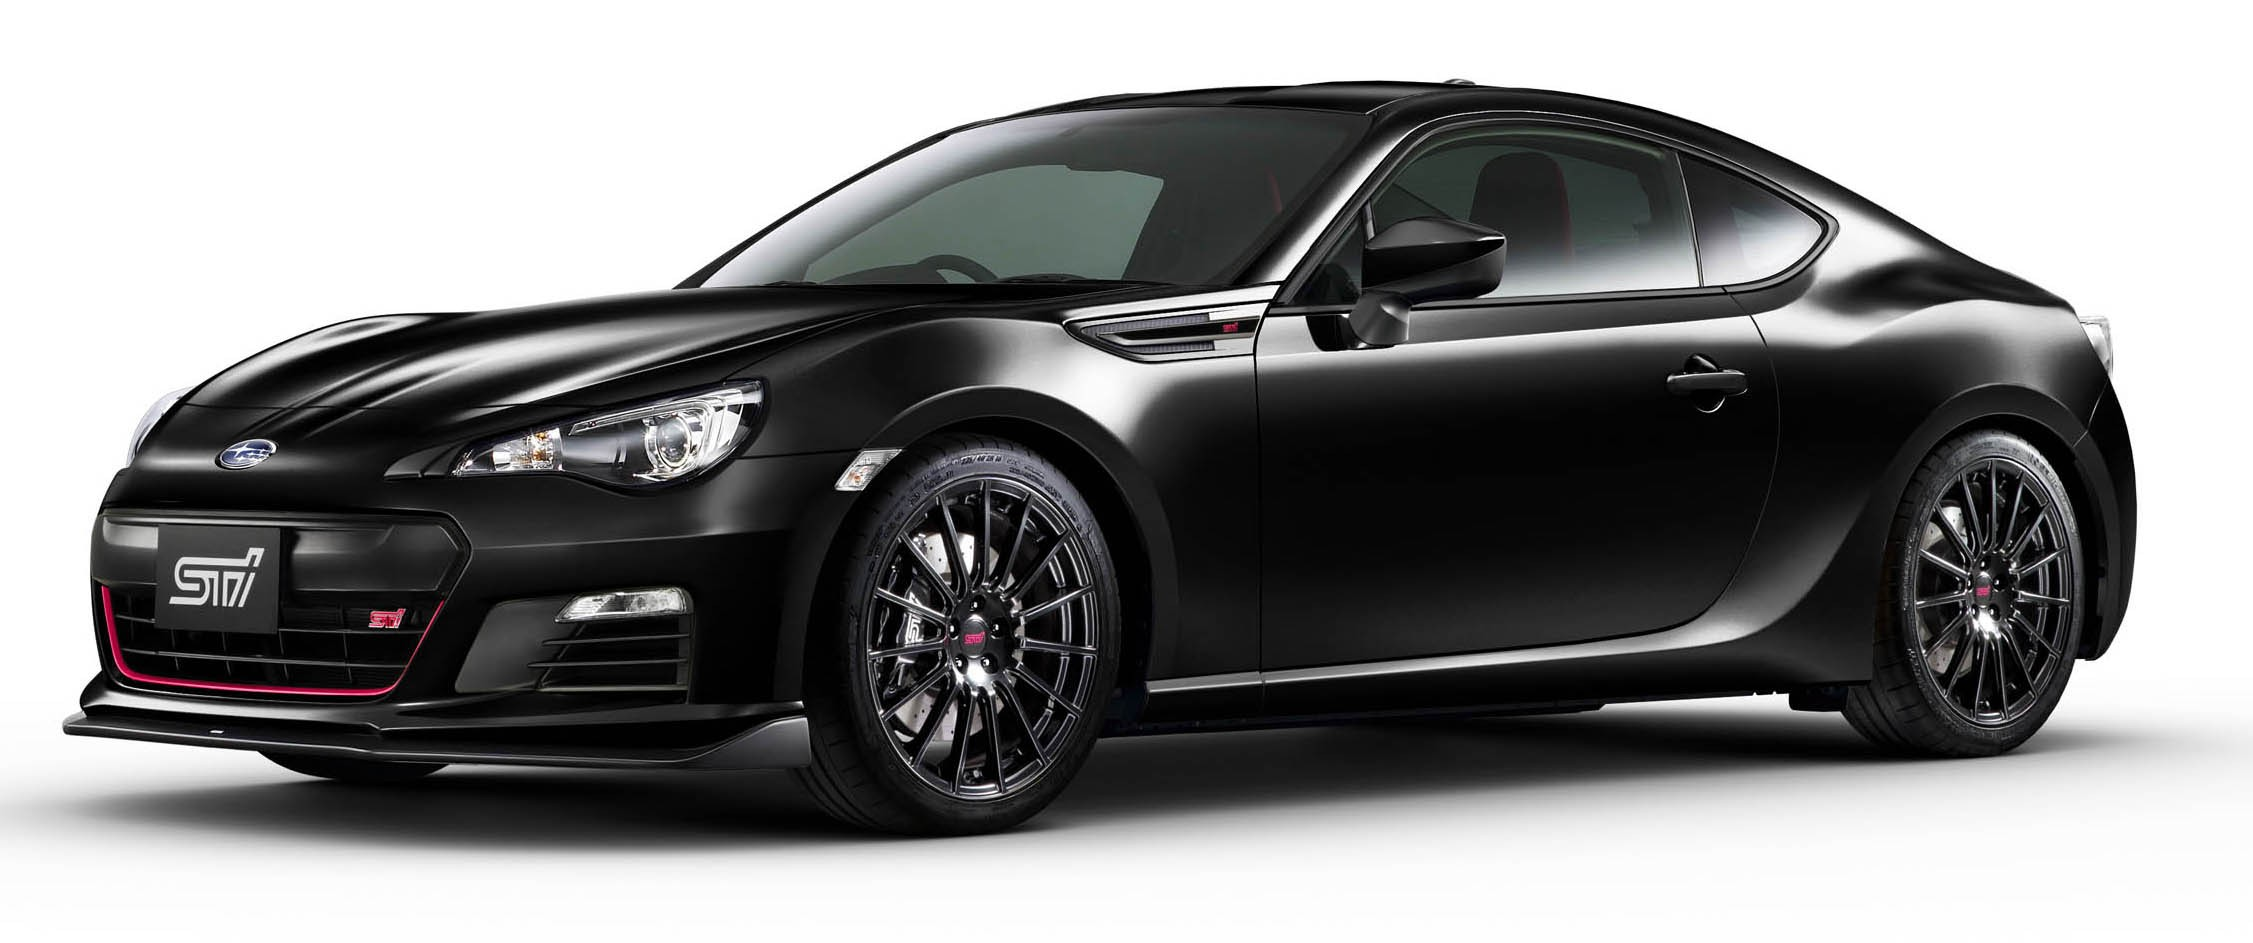 Subaru BRZ tS STI Launched in Japan Tweaked Suspension and Brembo